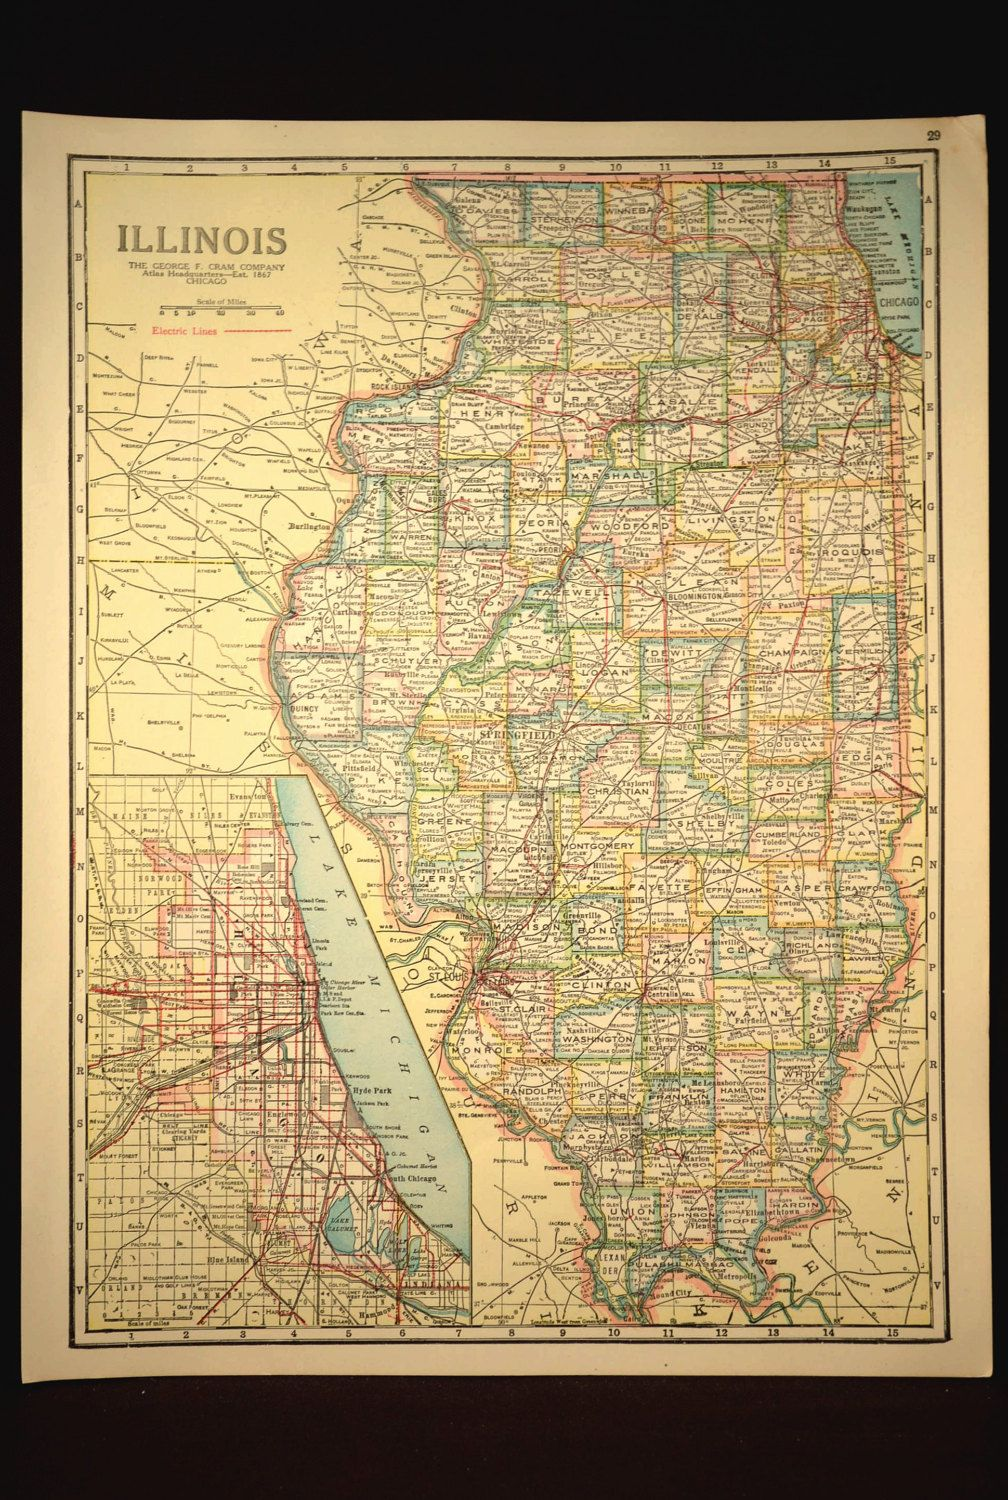 TWO SIDED Antique Road Map Illinois Map Original Highway Roadway ...